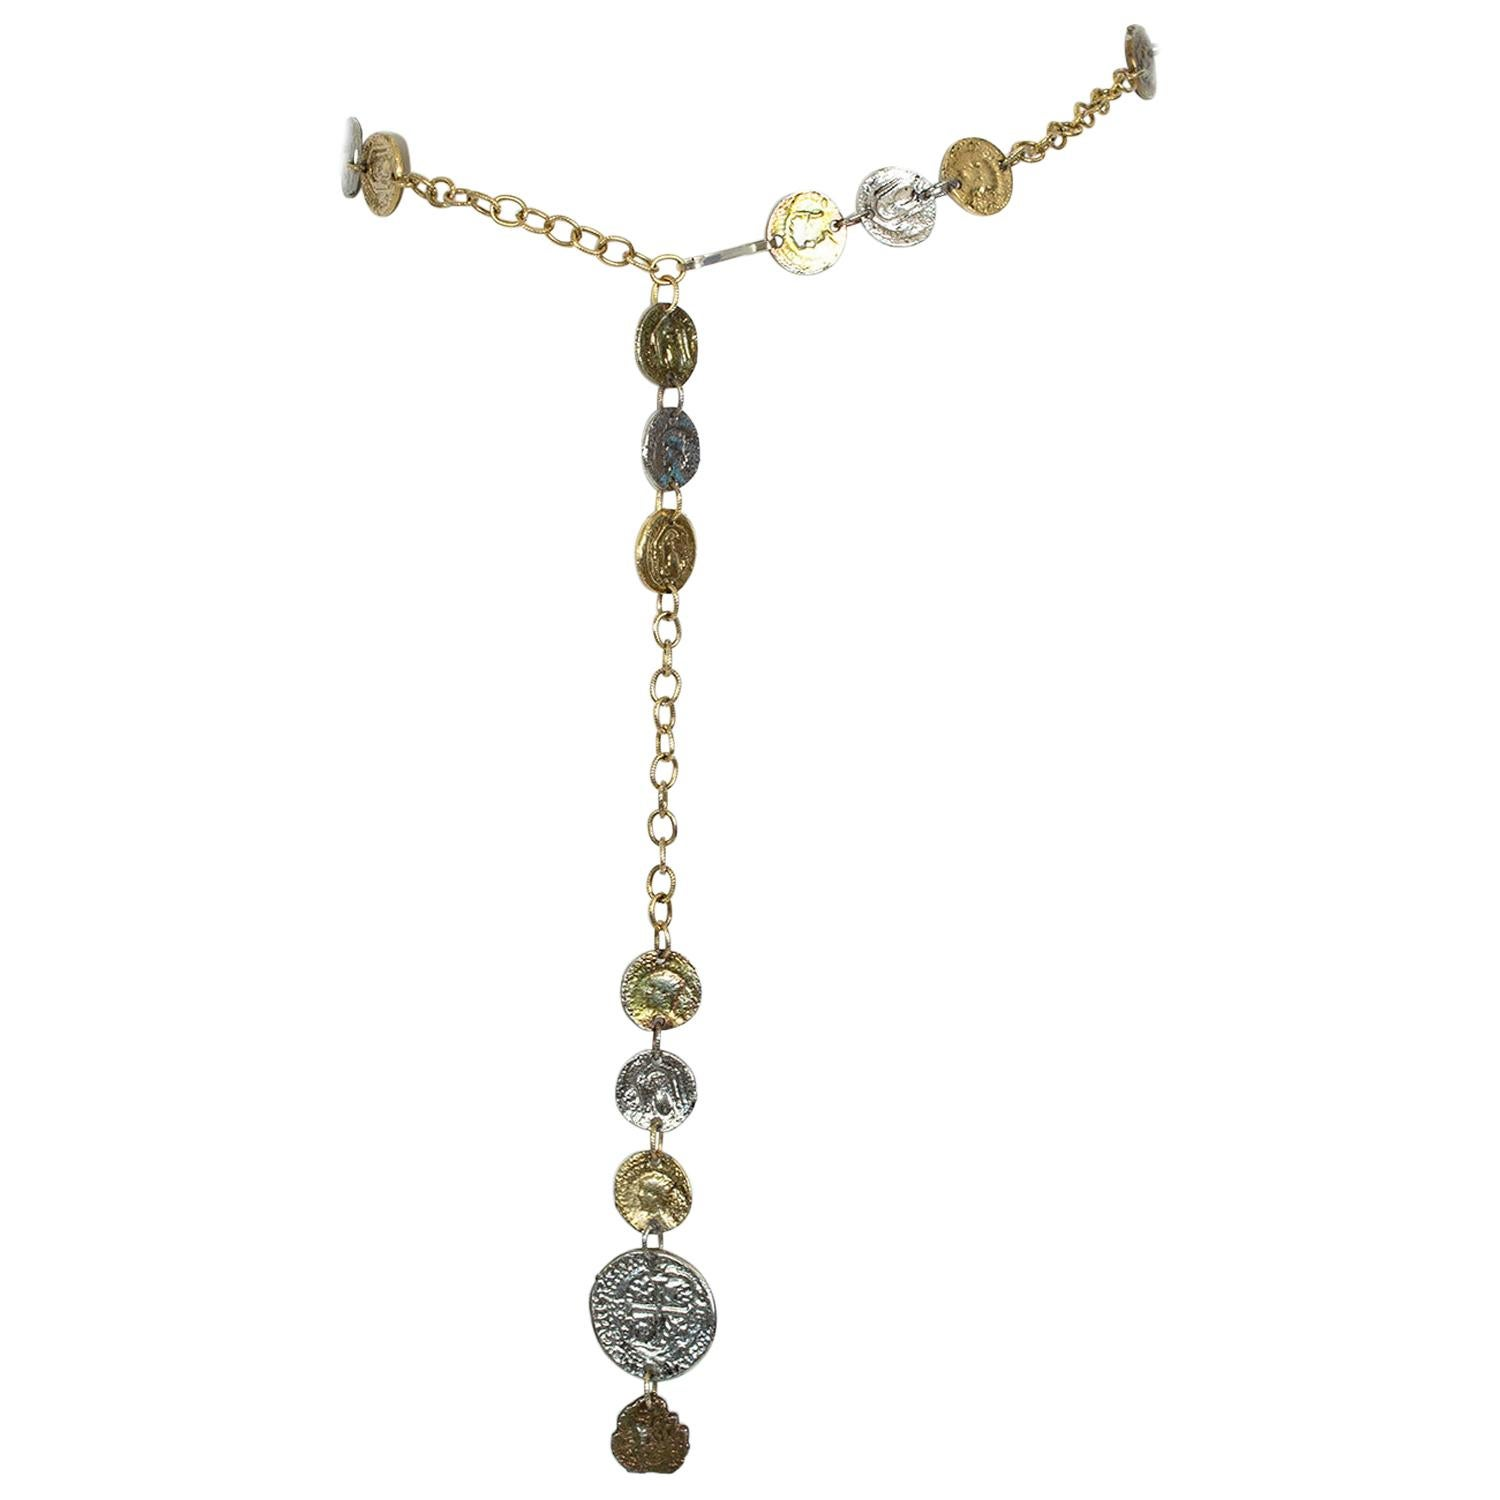 """Gold Shipwreck Chain Belt with Heavyweight Embossed """"Coins"""" – One Size, 1960s"""